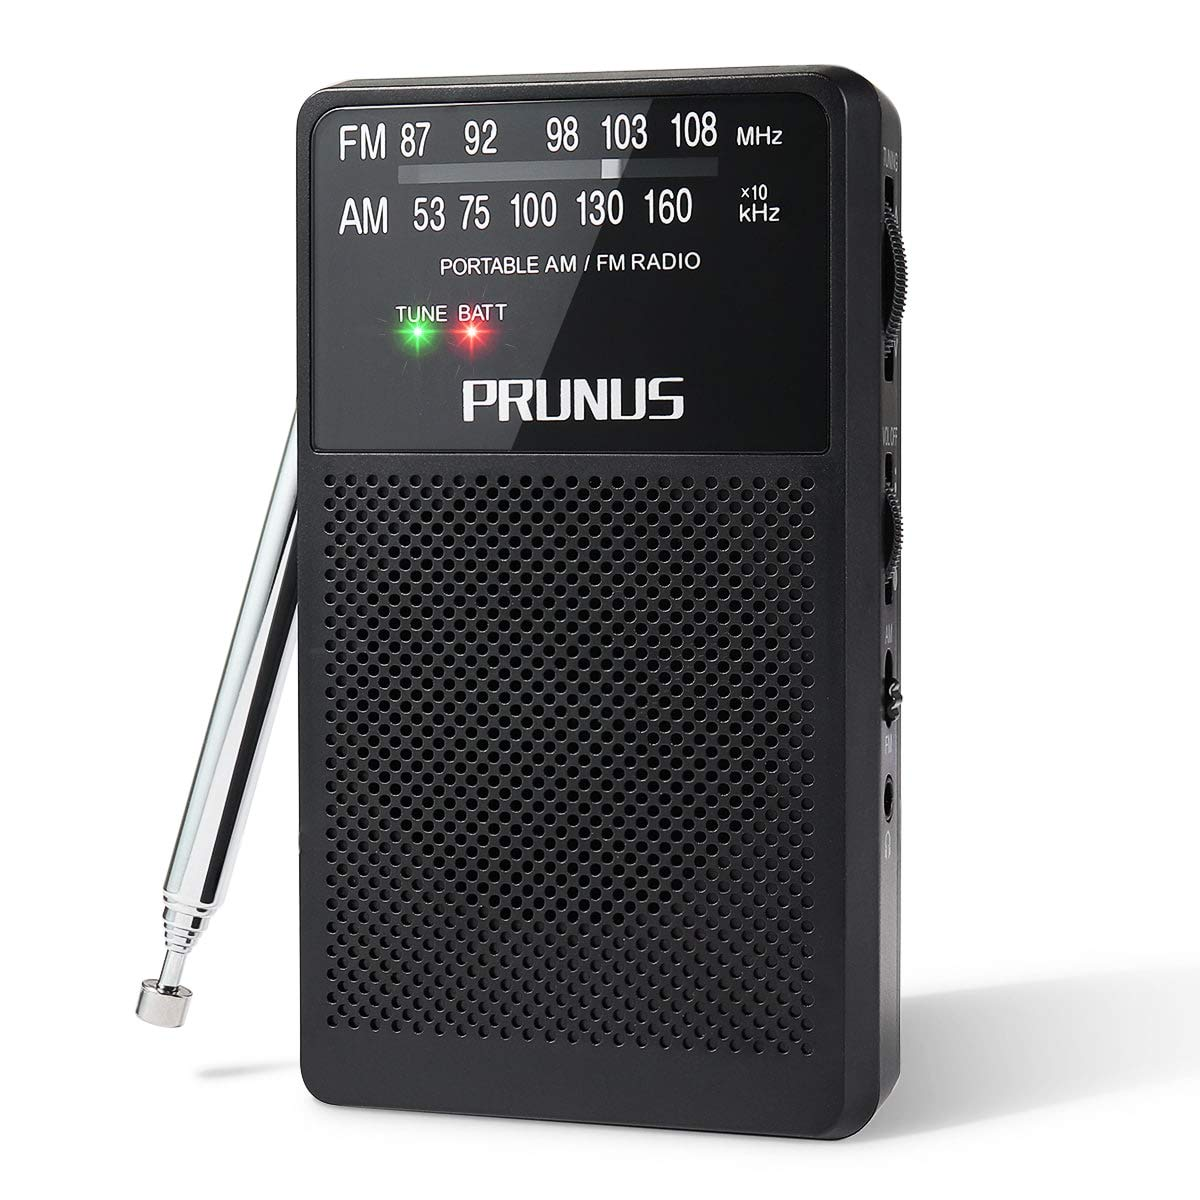 ANJAN-A166 AM/FM Portable Radio, Small Transistor Radio with Ultra-Long Copper Antenna, Excellent Reception, Tuning Knob with Signal Indicator, Supports Replaceable Battery (AA) (Black), by PRUNUS